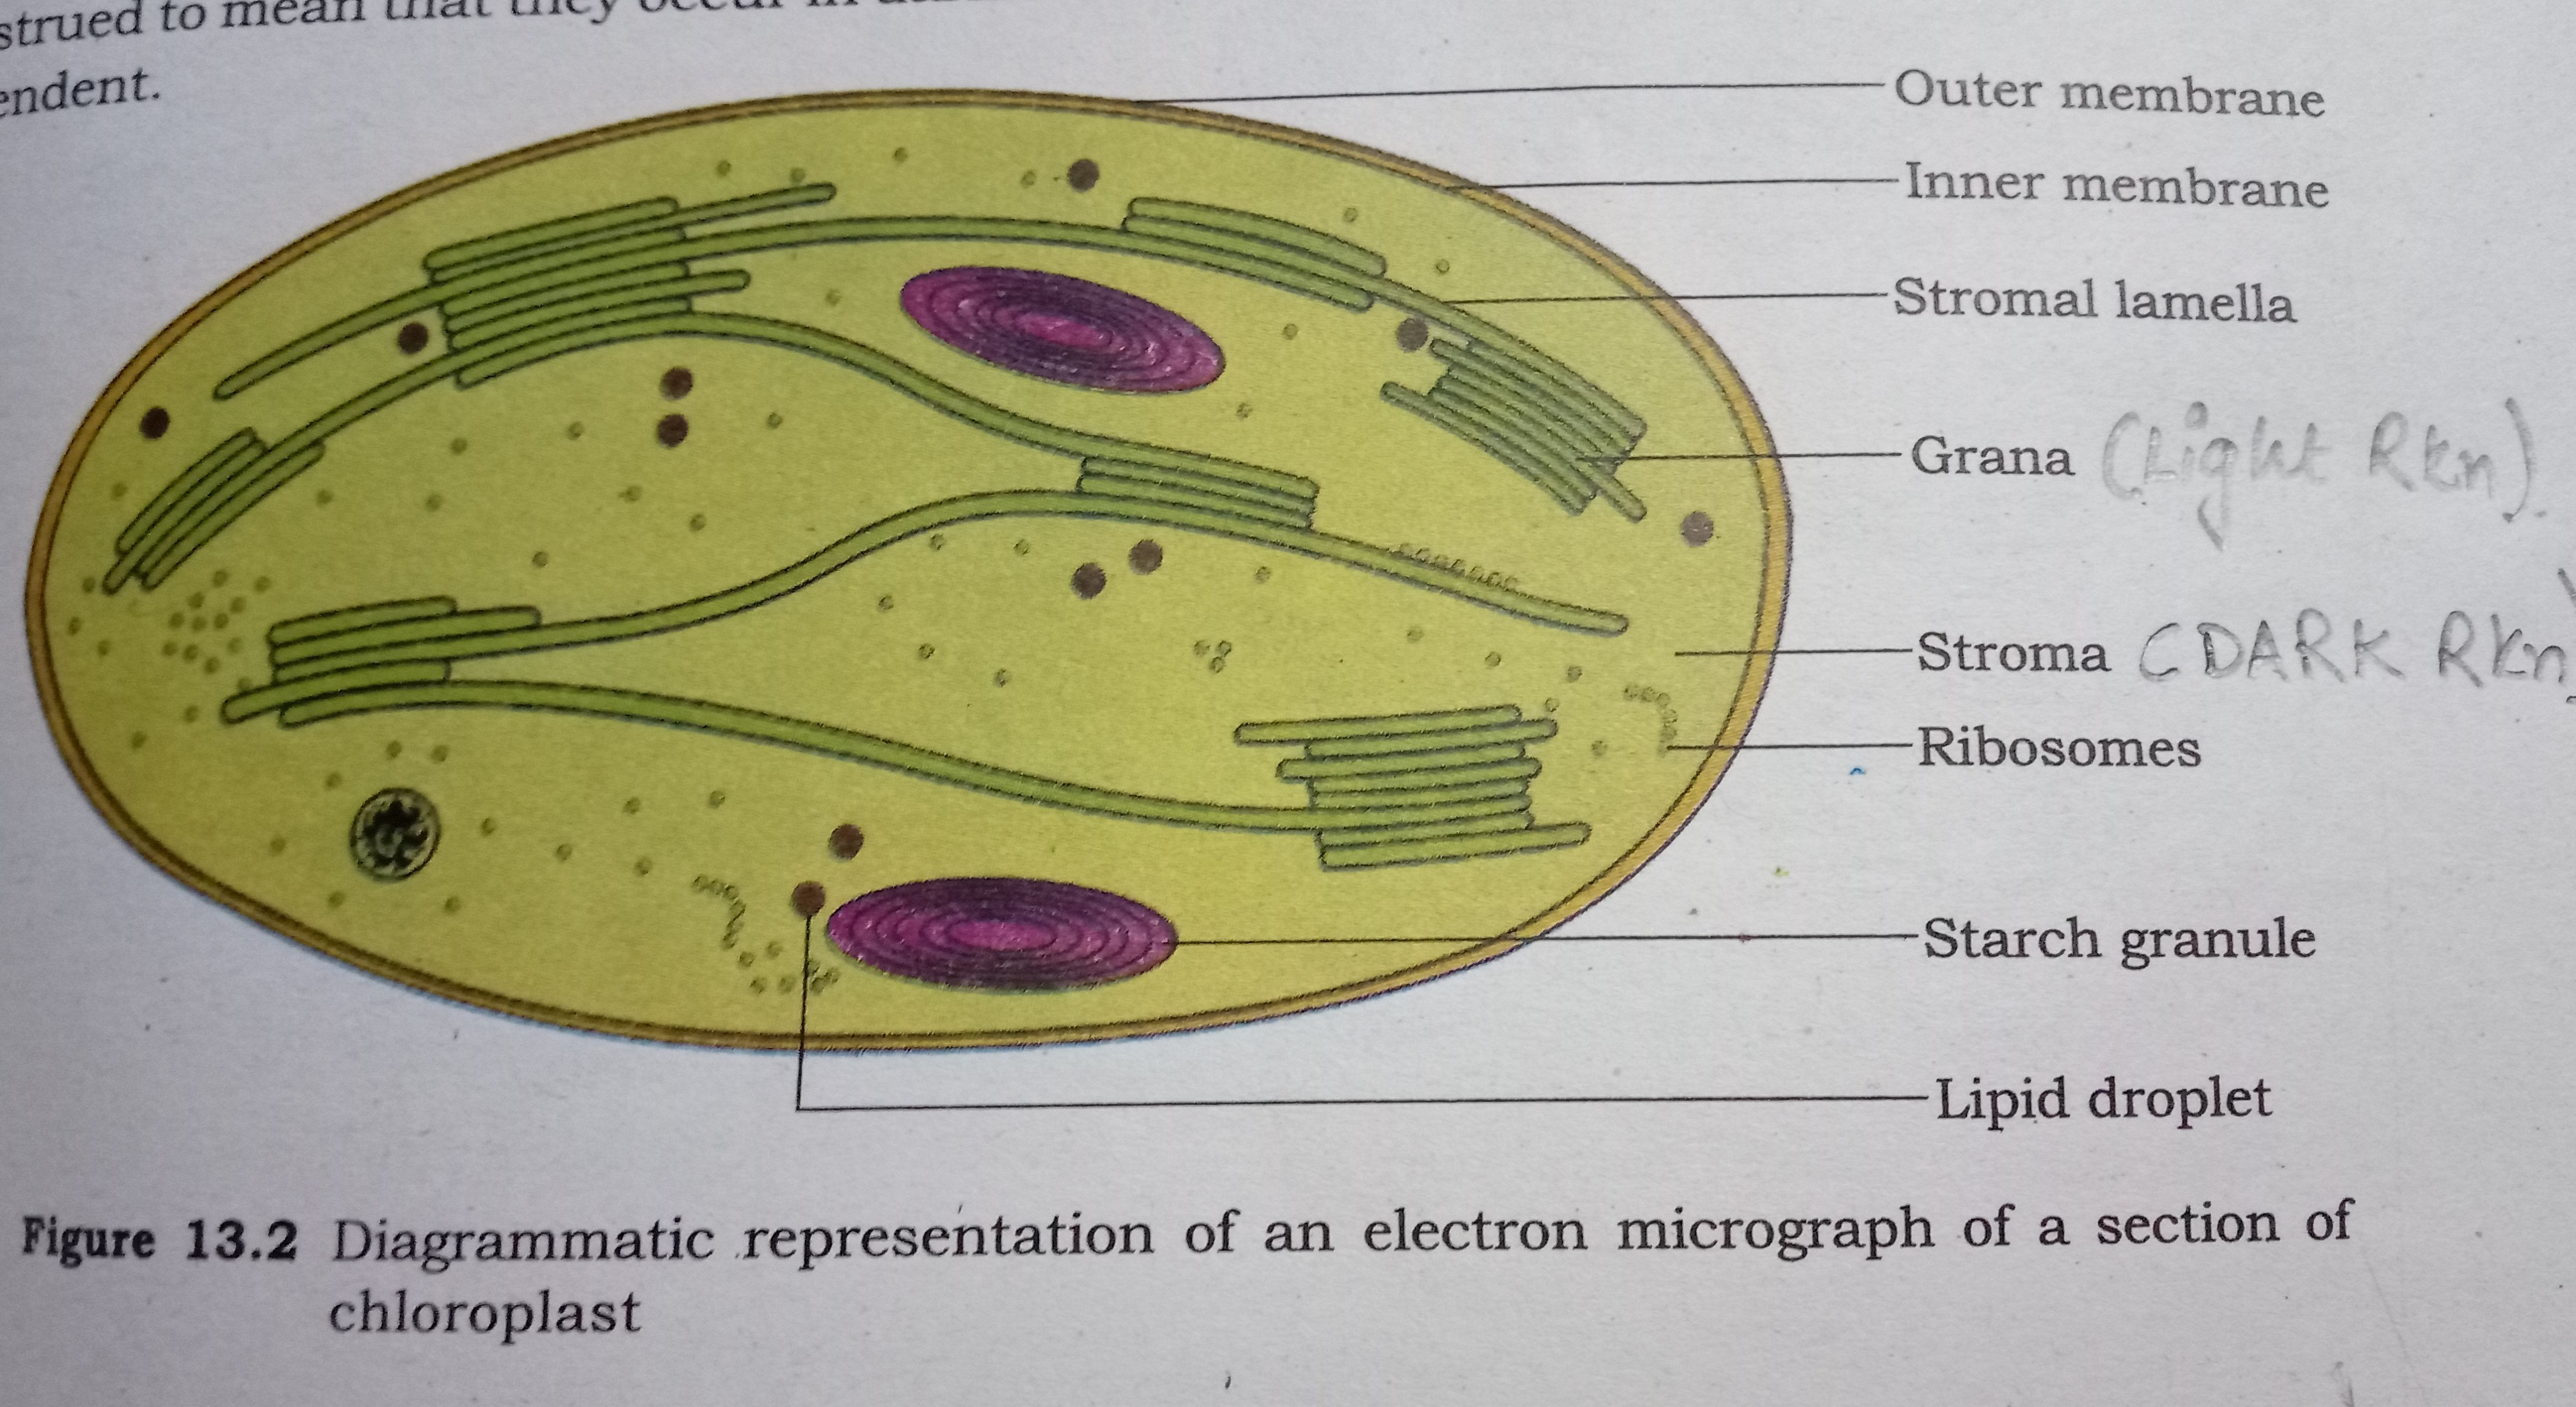 How Are Well Labeled Diagram Of A Sectional View Of Chloroplast And